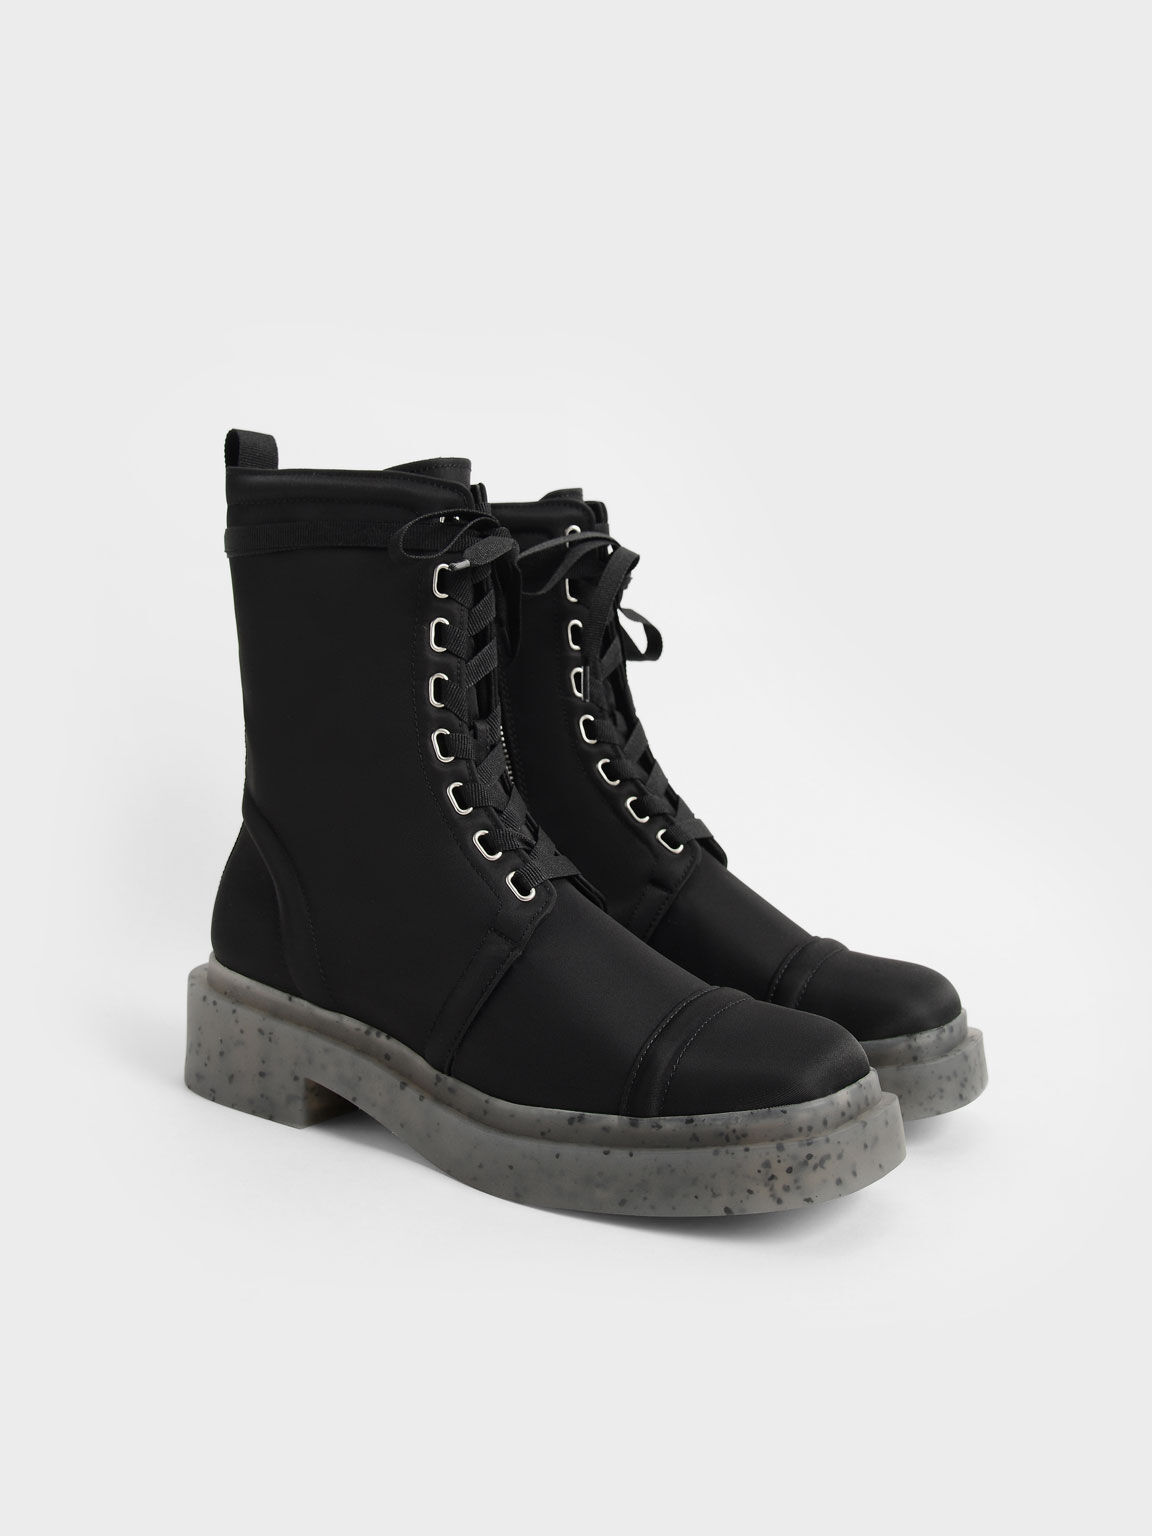 The Anniversary Series: Charli Recycled Nylon Lace-Up Ankle Boots, Black, hi-res